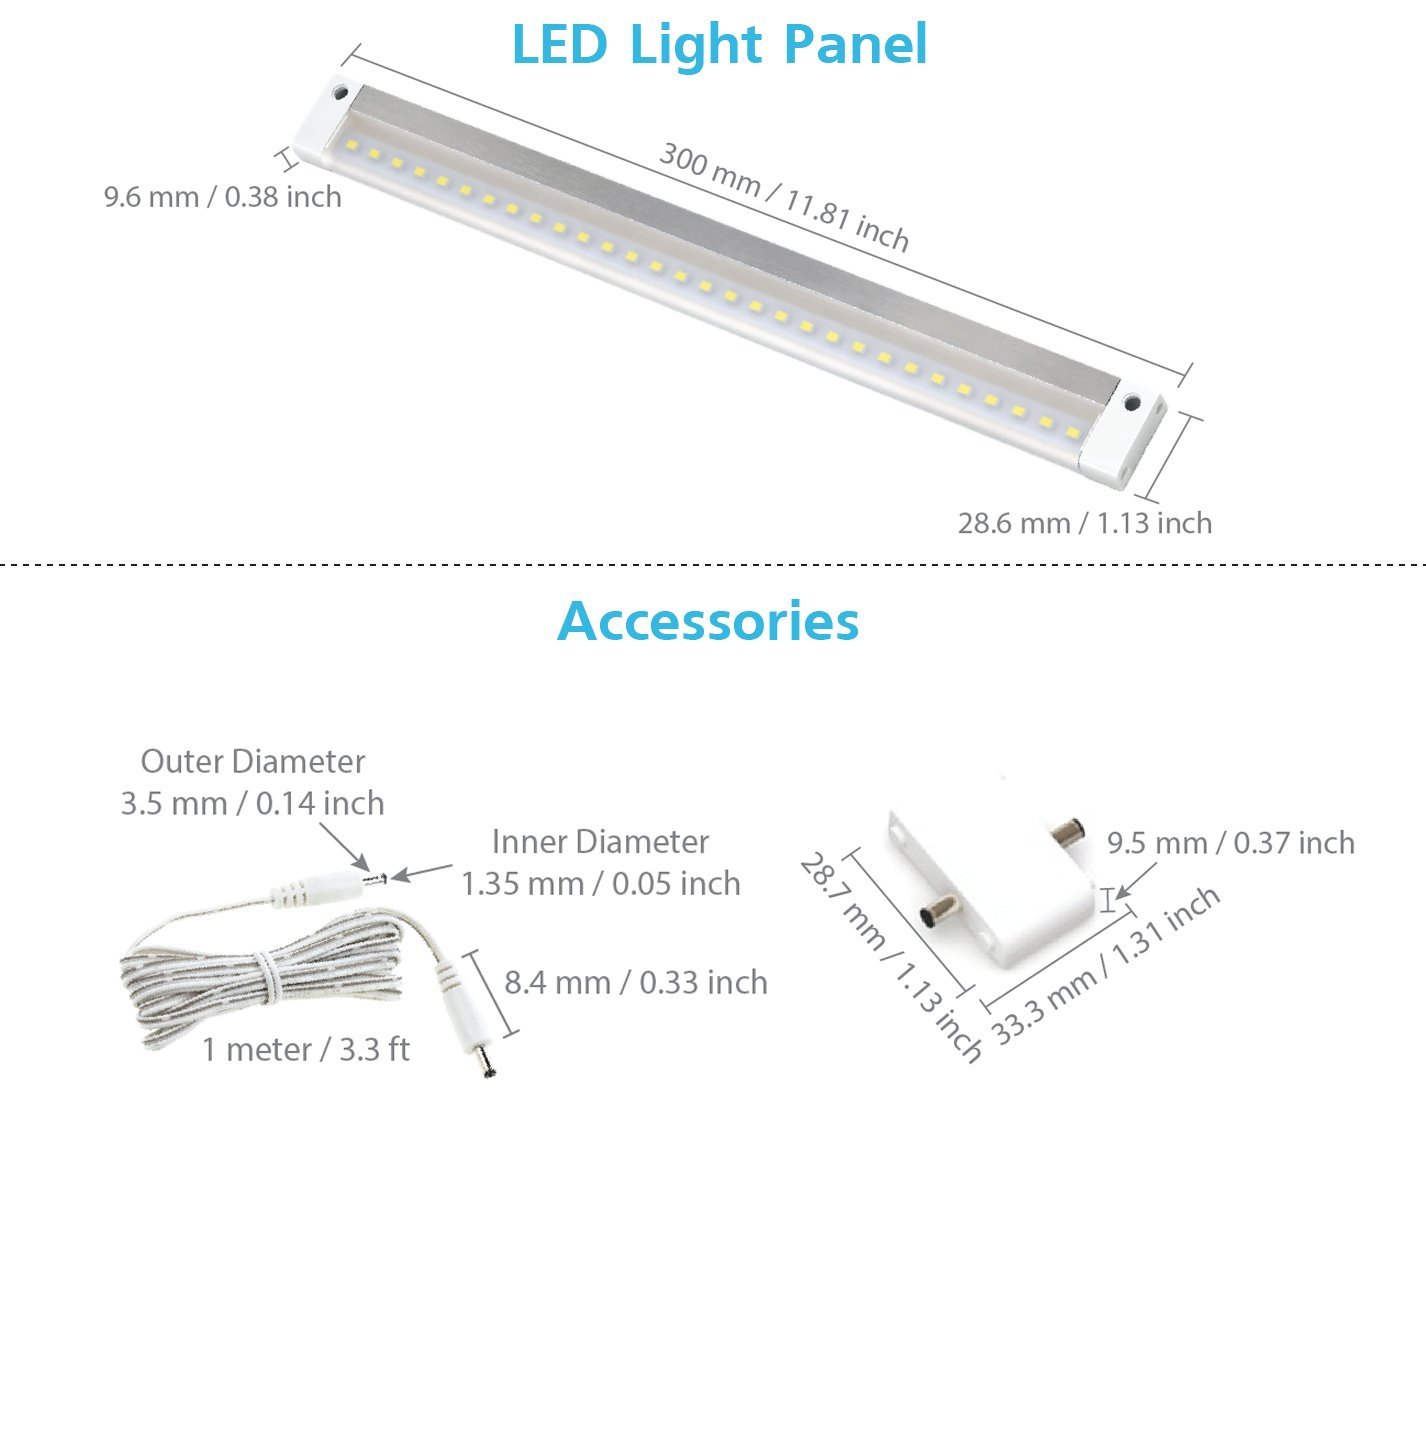 EShine White Finish 12 inch LED Under Cabinet Lighting Bar Panel with Accessories No Power Supply Included – NO IR Sensor, Cool White 6000K